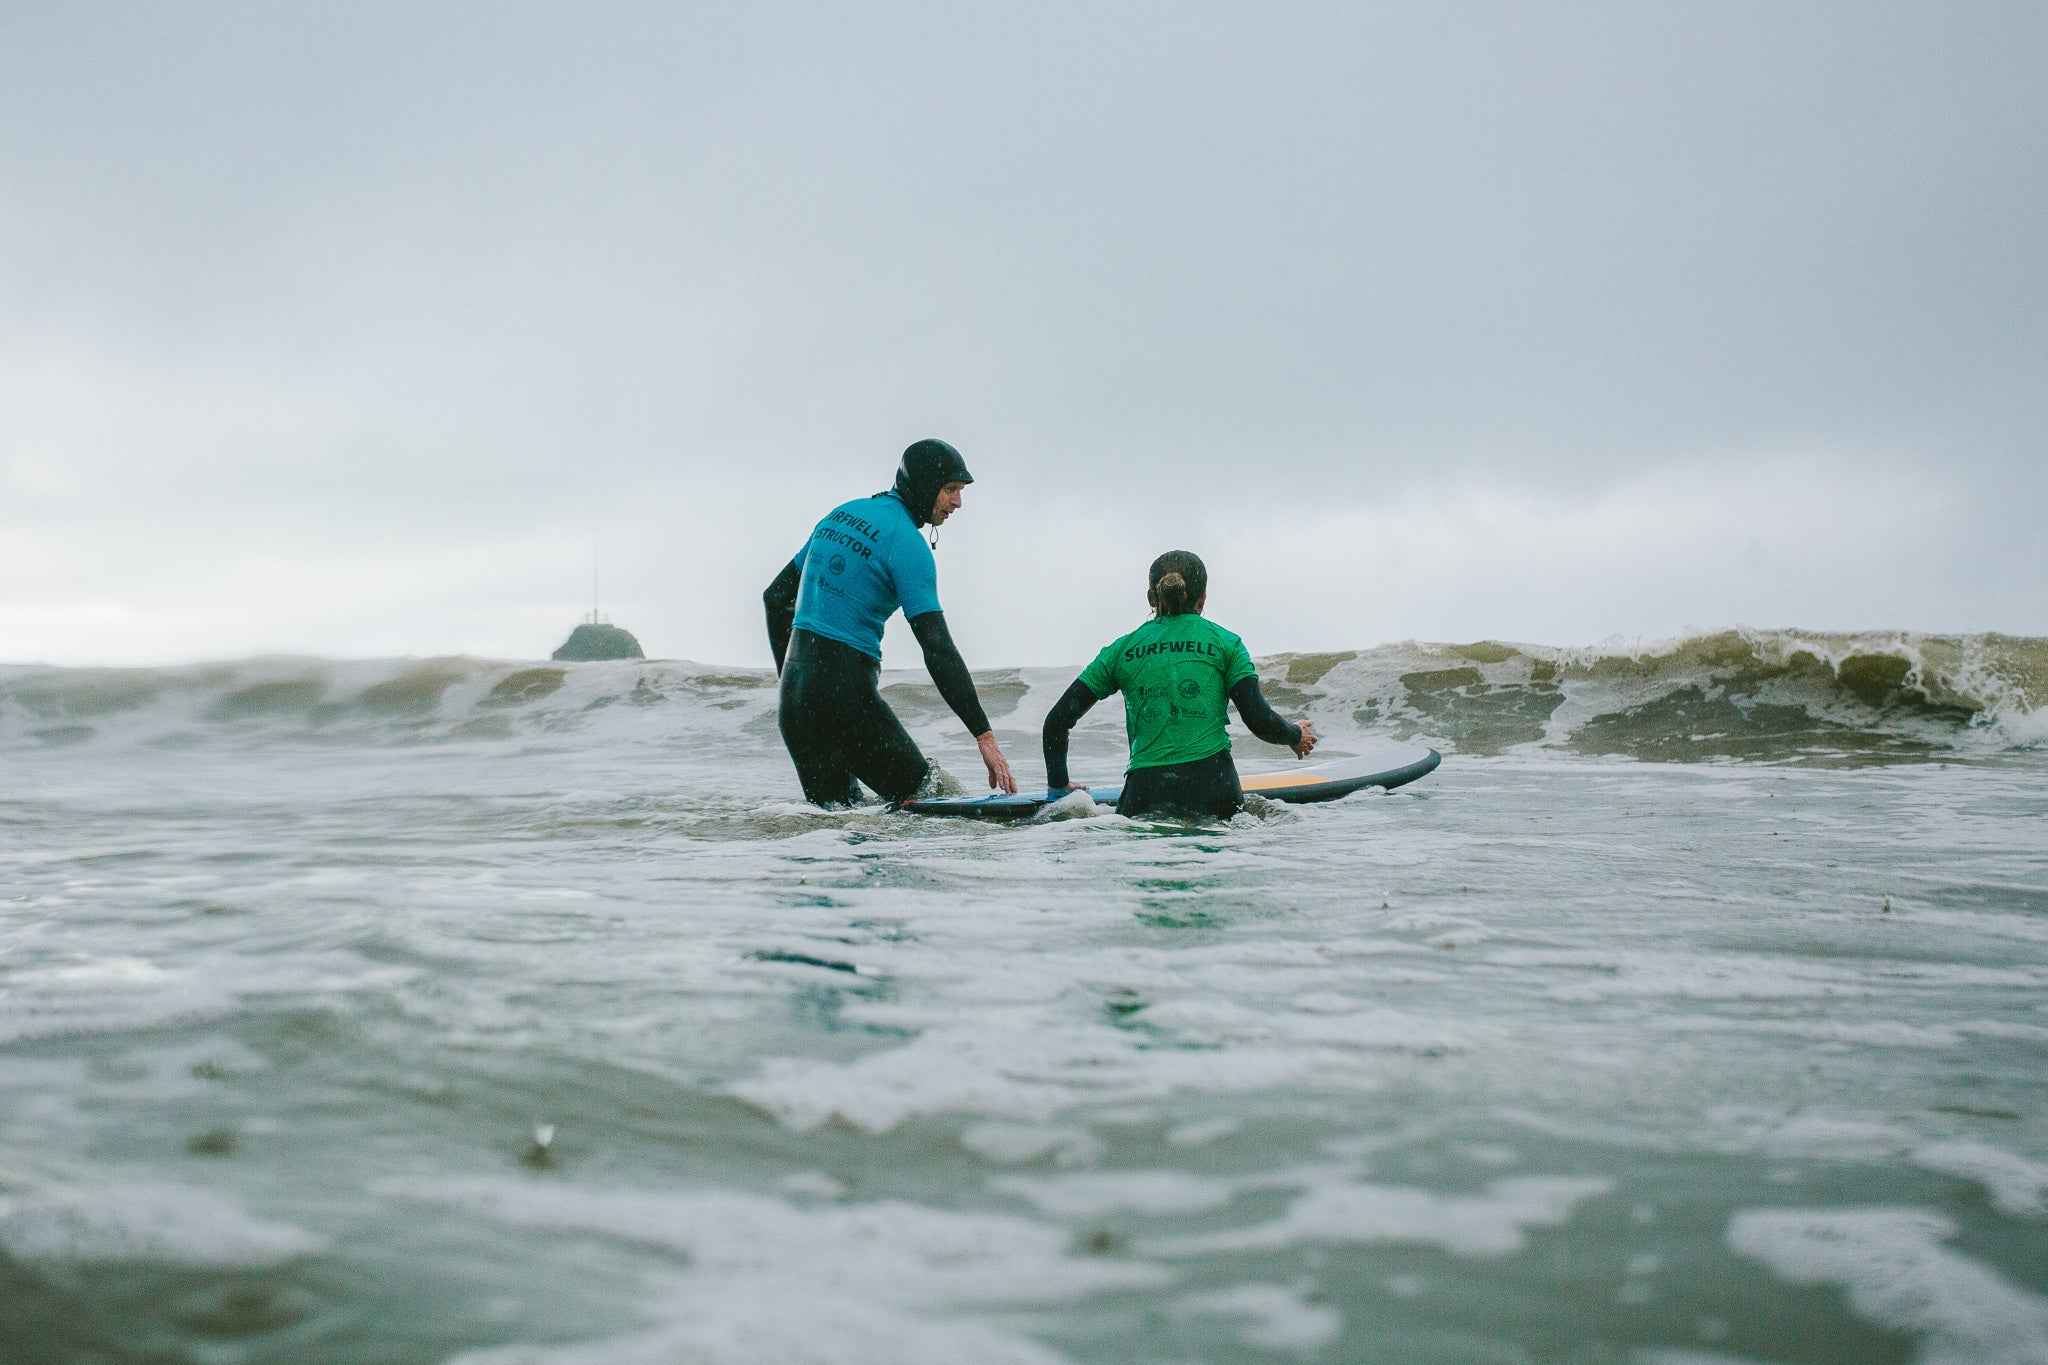 Surf therapy instructor in the water with a Surfwell participant